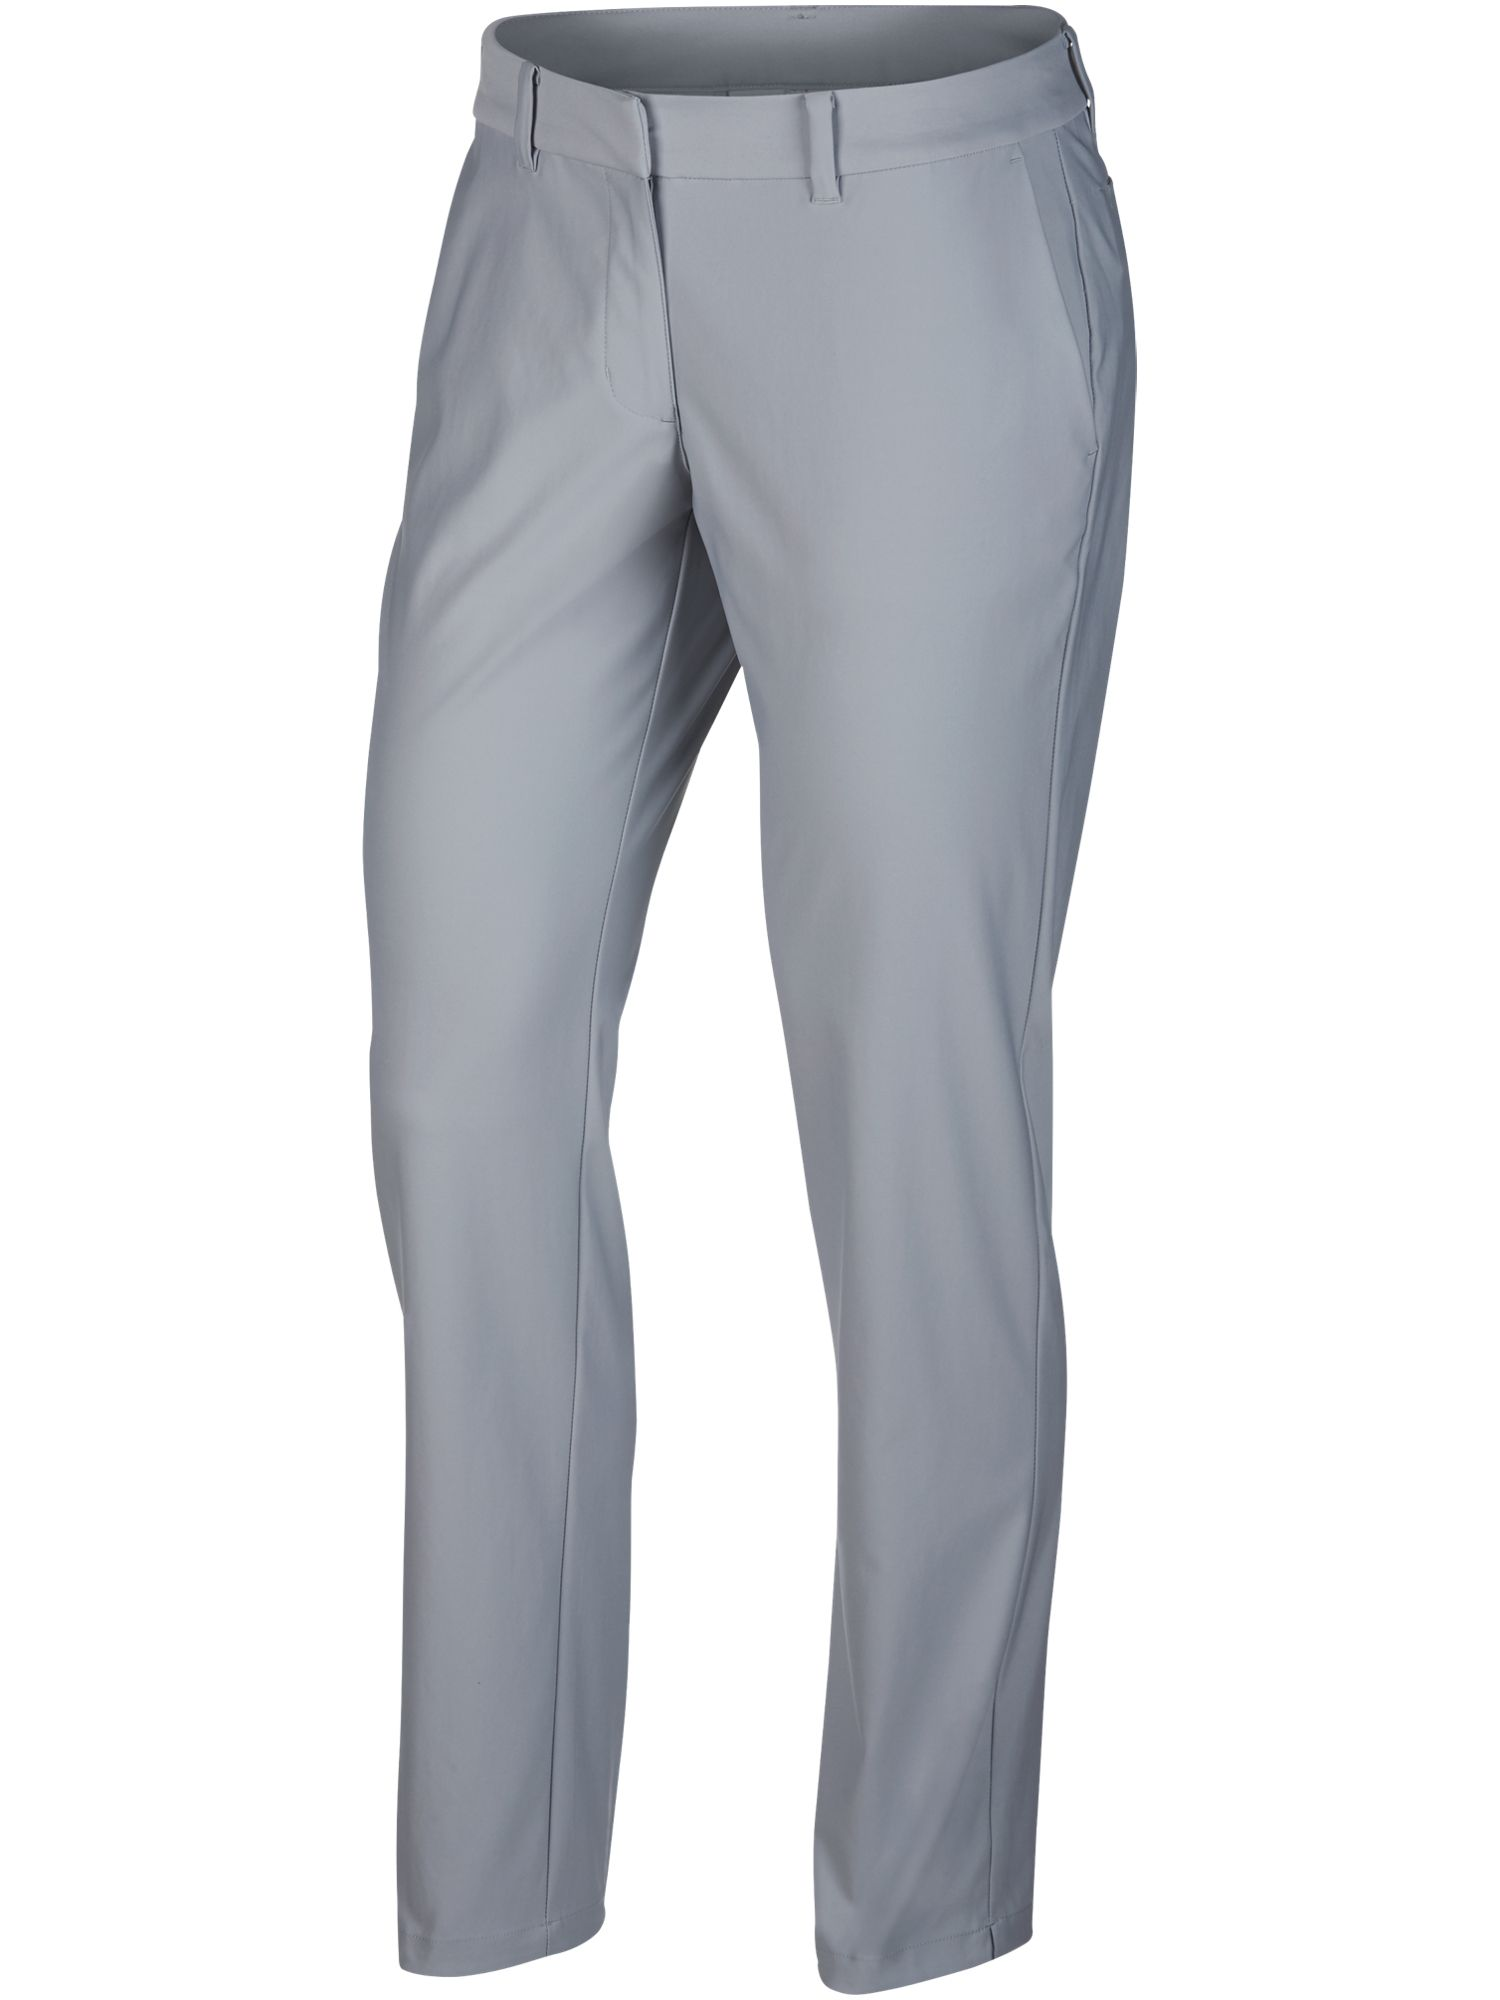 Nike Golf Flex Woven Trouser, Grey